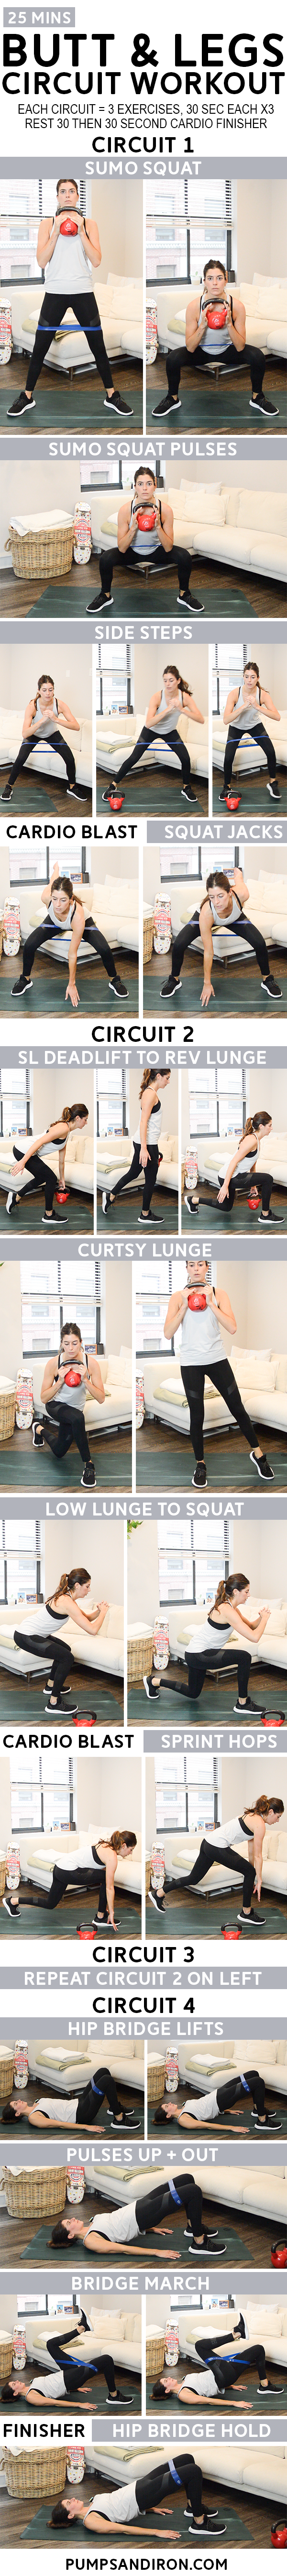 25 Minute Circuit Workout With Cardio Blasts Legs Butt Pumps Iron Arms Abs